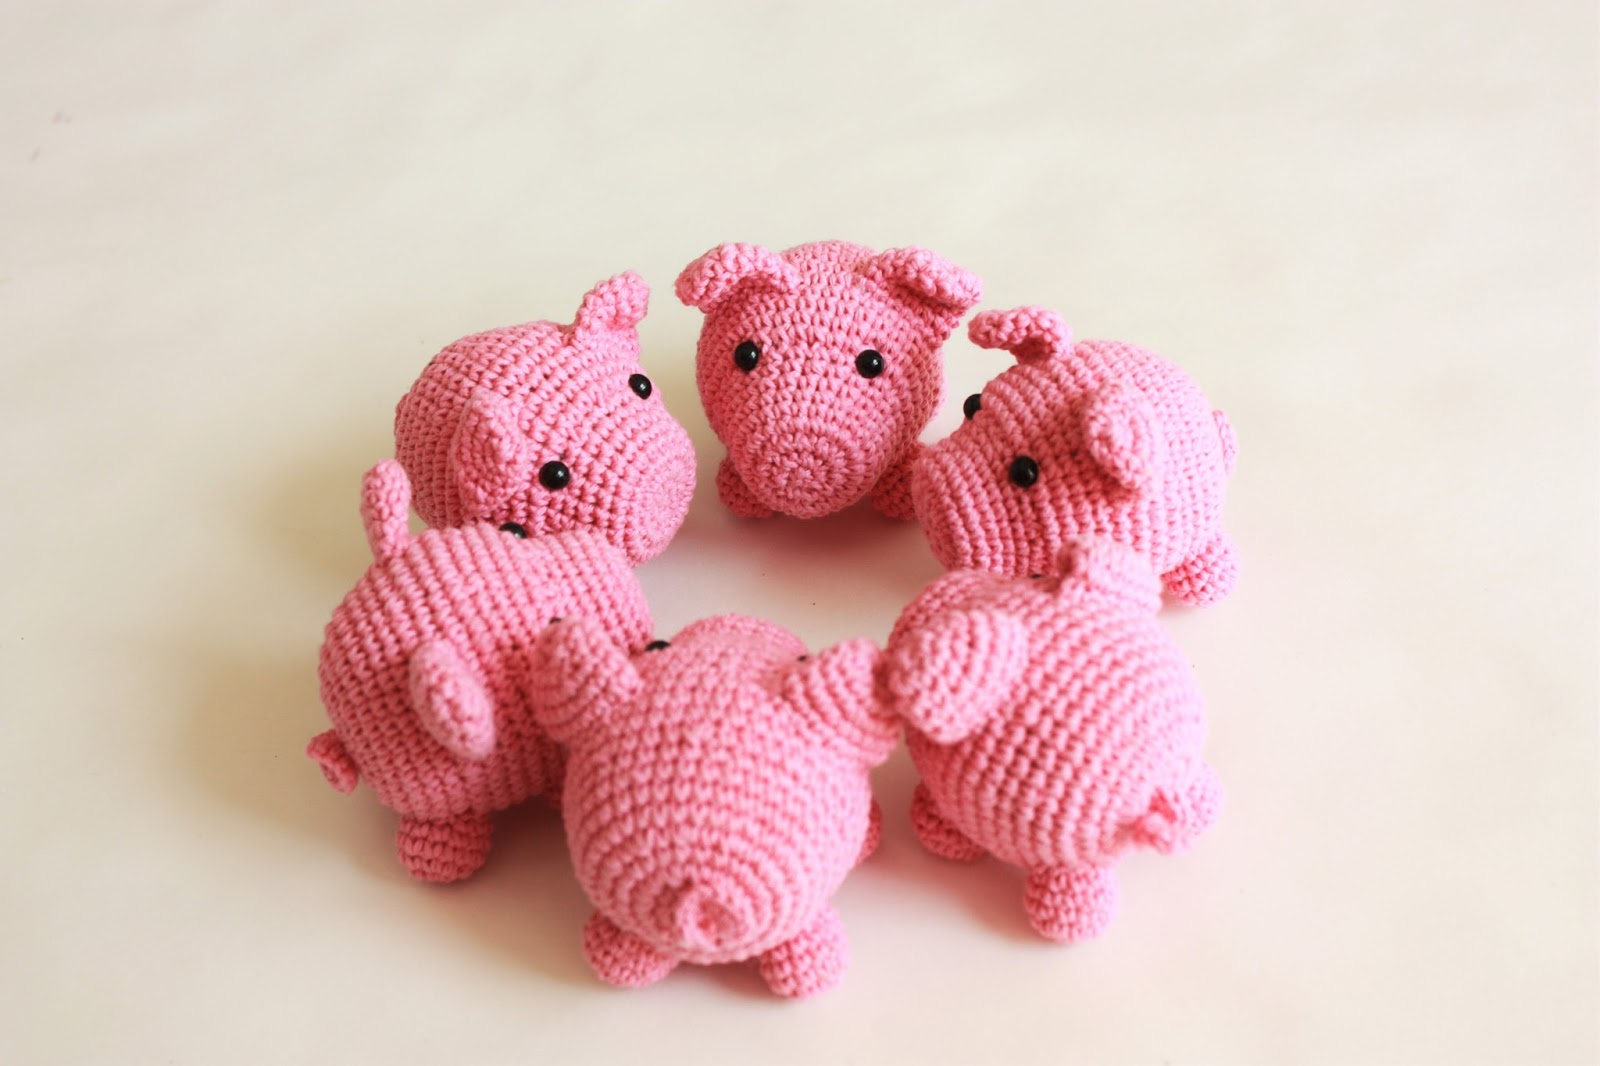 Amigurumi Piglet Patterns : HAPPYAMIGURUMI: New Amigurumi Pattern : Little Pig PDF ...